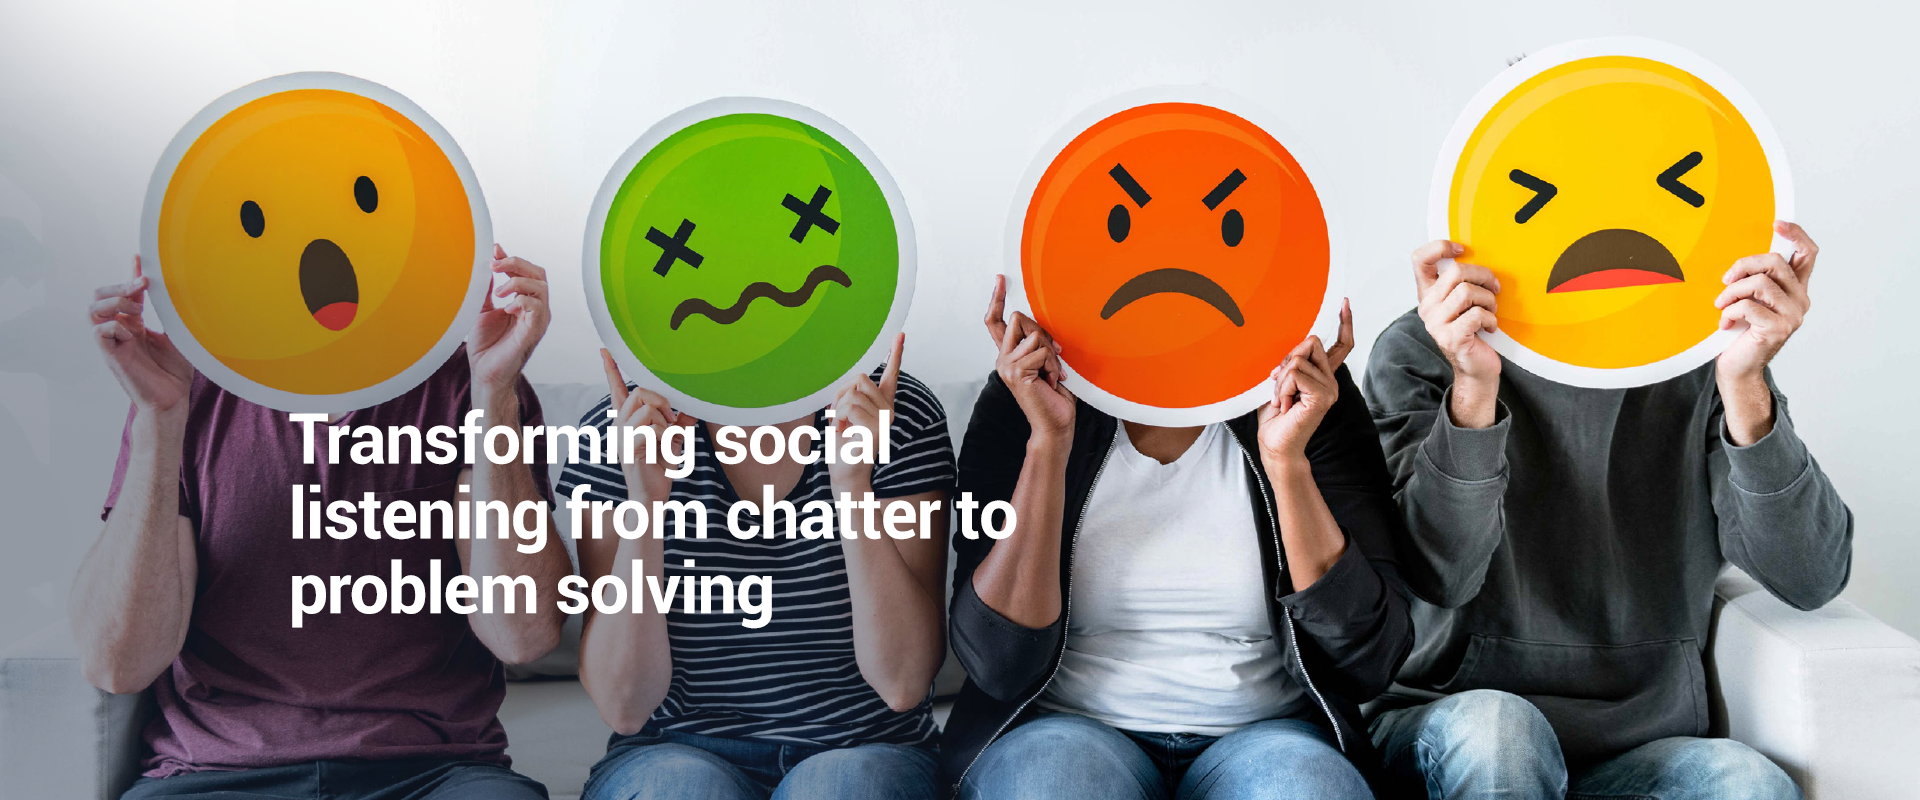 Transforming social listening from chatter to problem solving